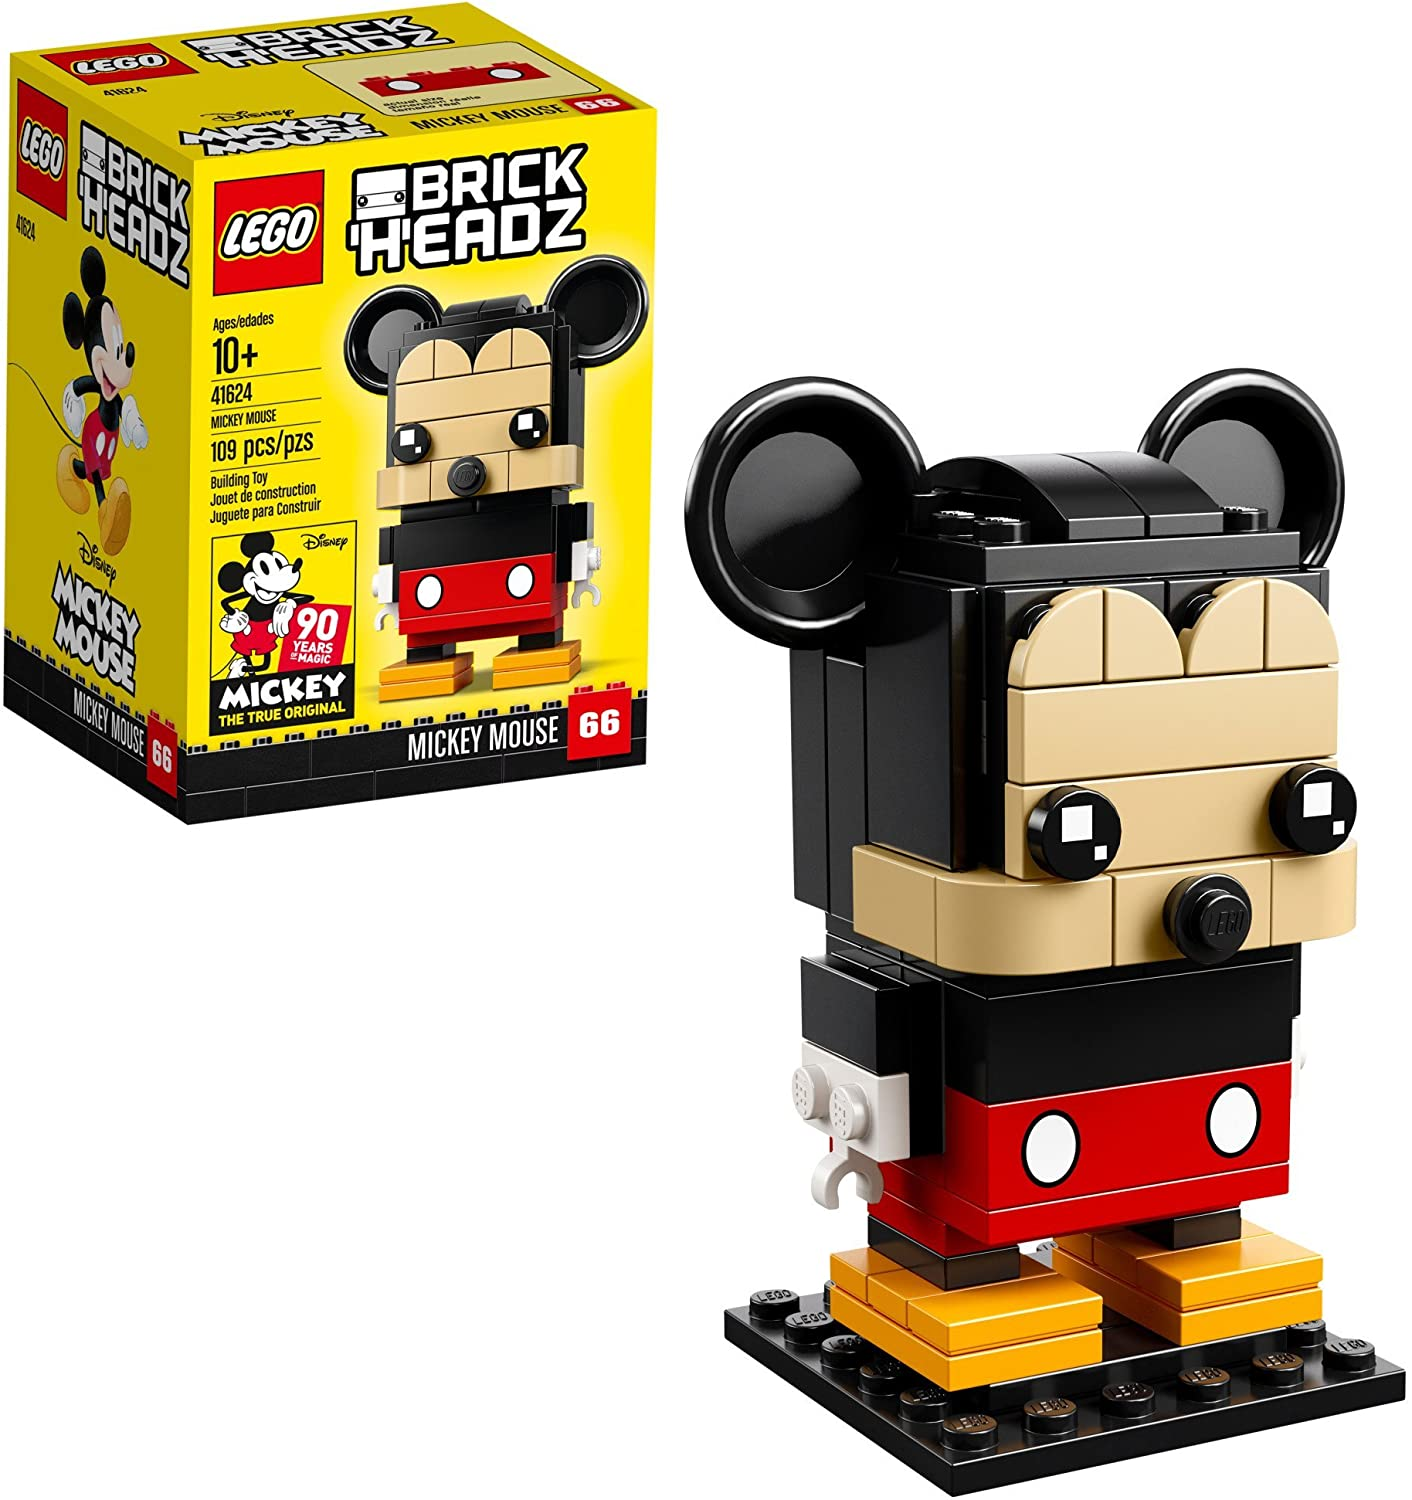 Lego 6225330 Brickheadz Mickey Mouse 41624 Building Kit (109 Piece), Multicolor